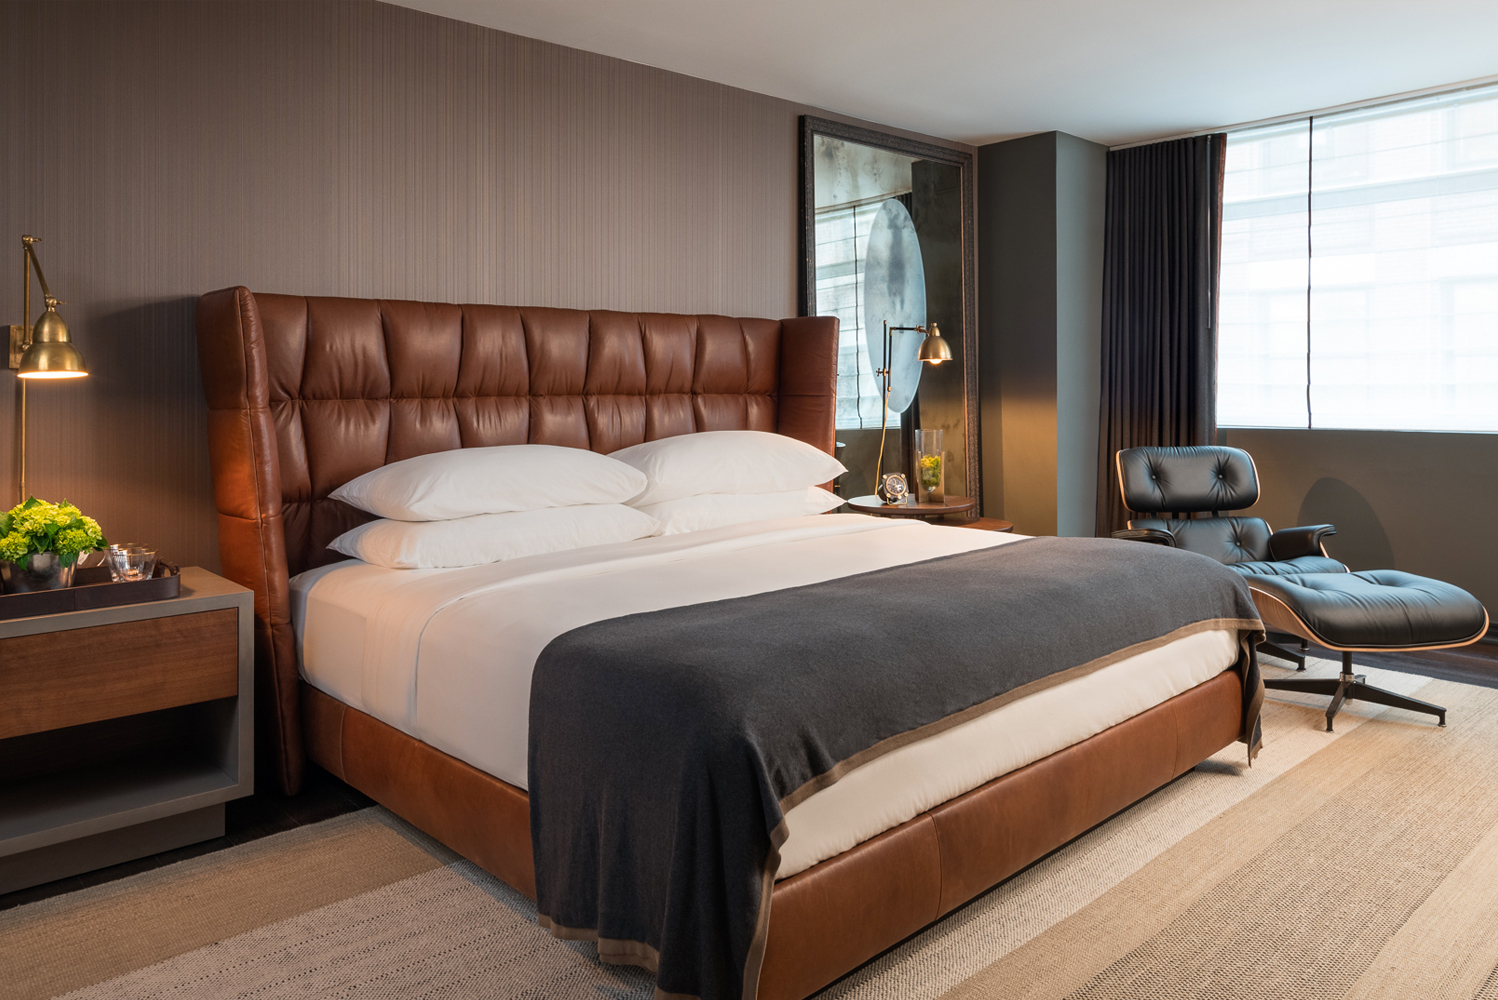 Kimpton Nine Zero revealed its top-to-bottom transformation that gives nods to Boston history.